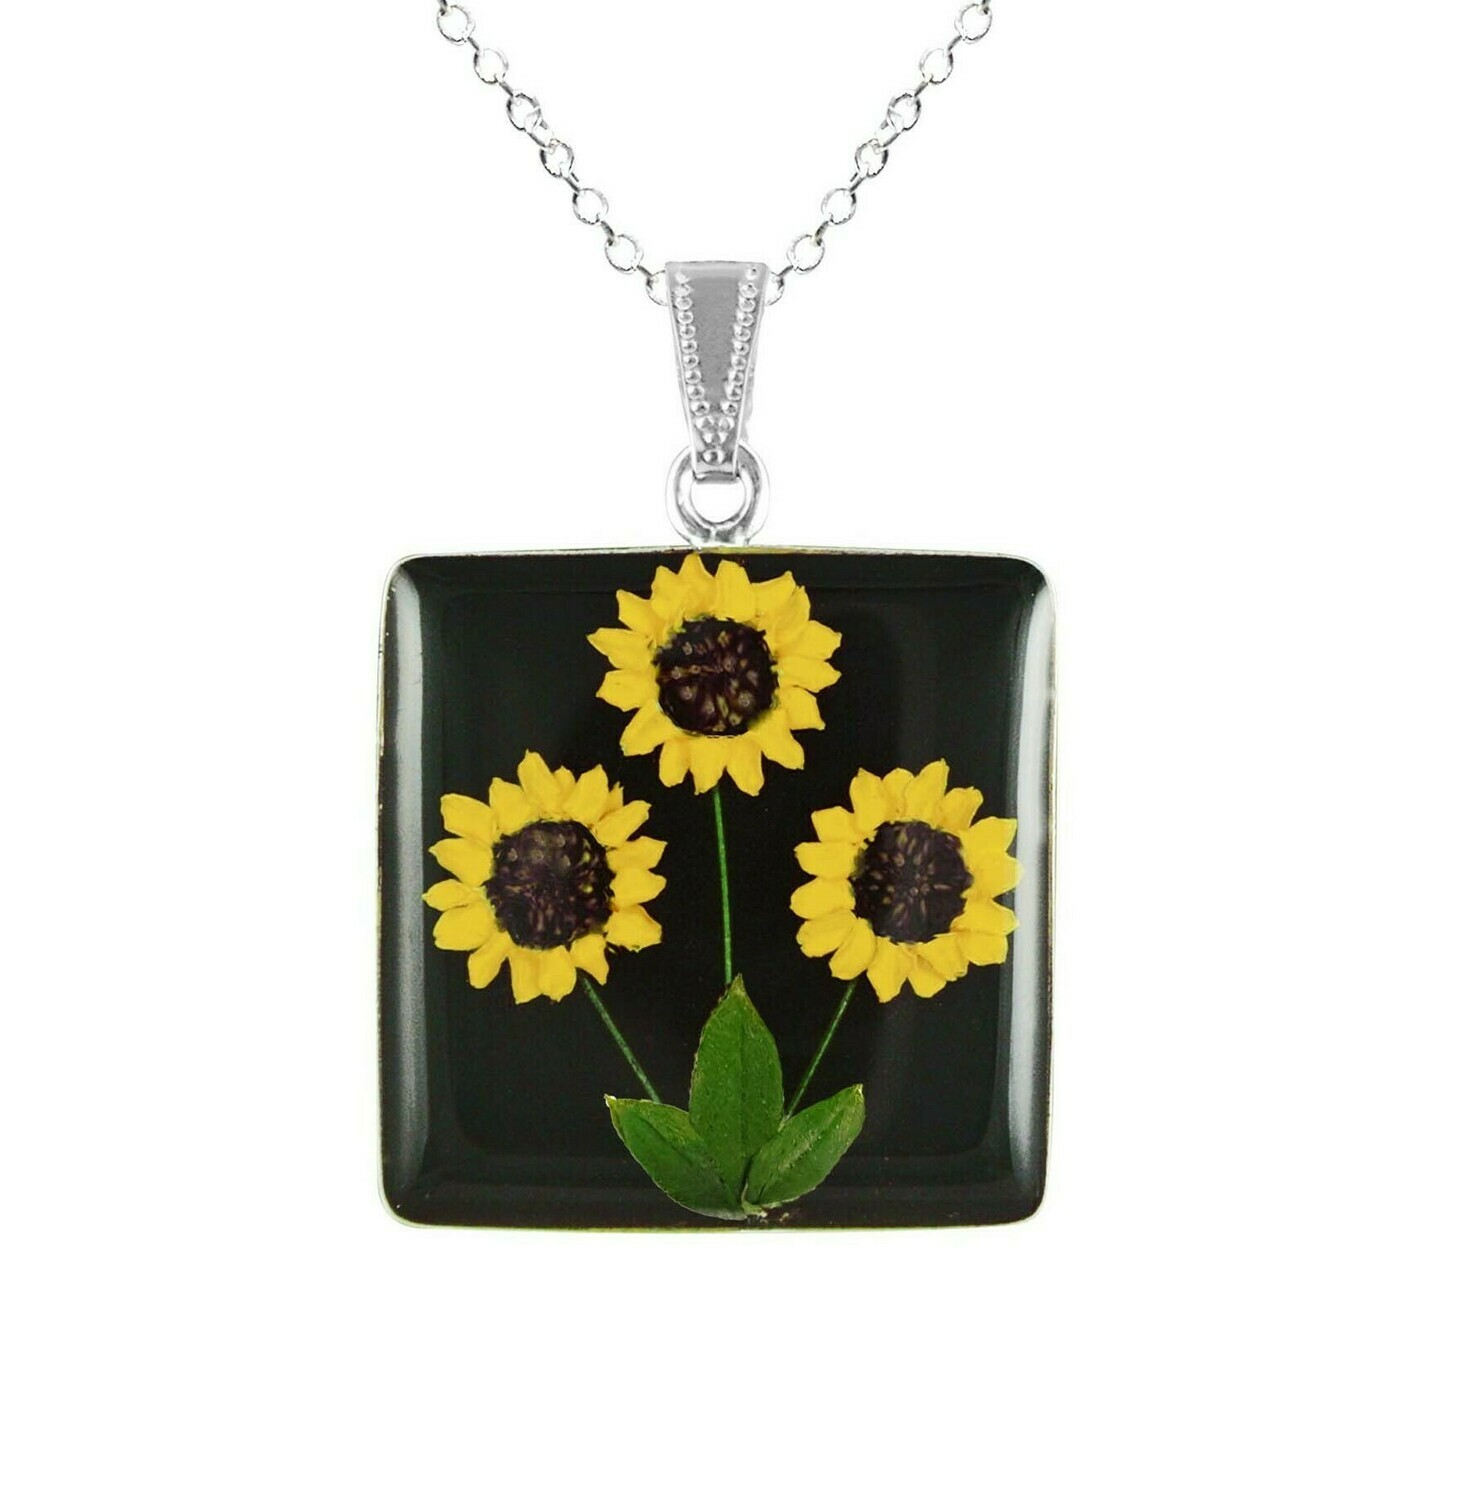 Sunflower Necklace, Large Square, Black Background